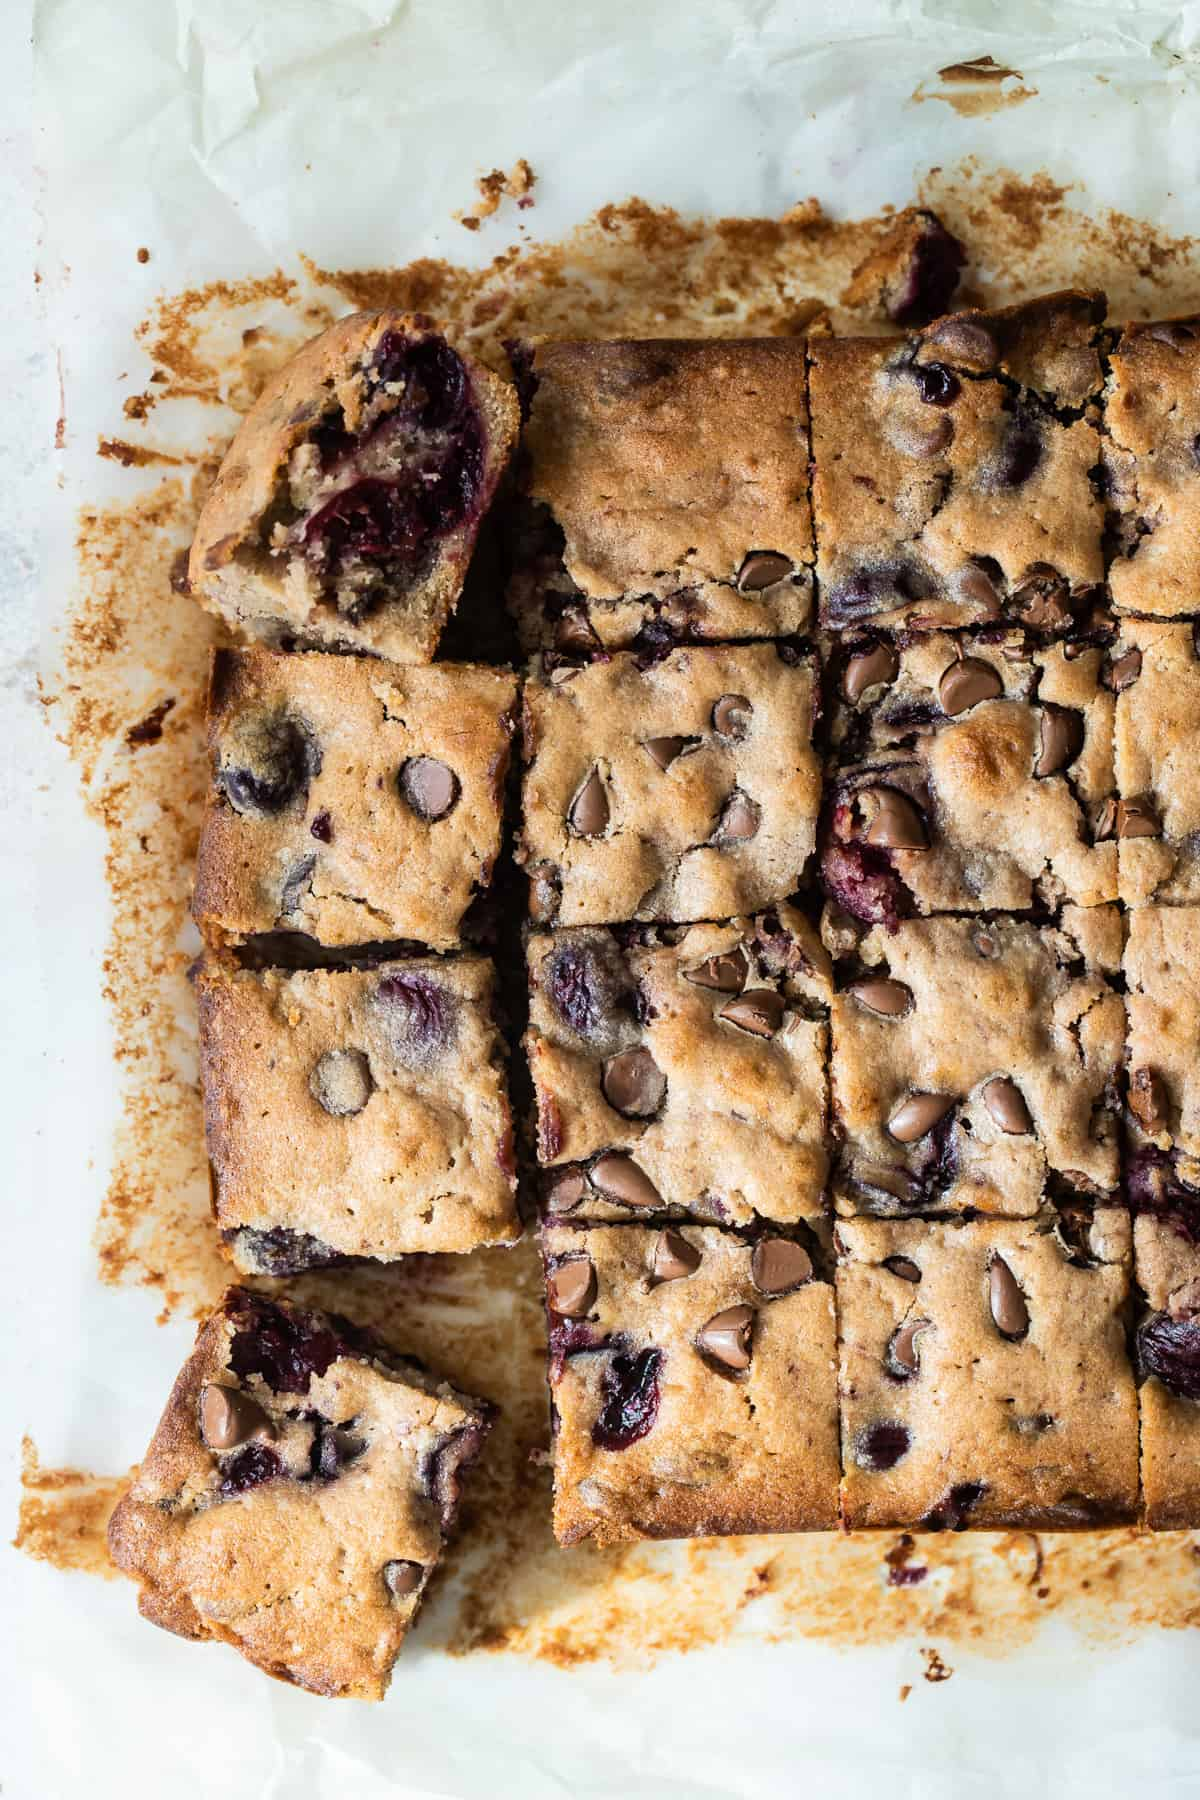 cherry bars cut into squares with chocolate chips